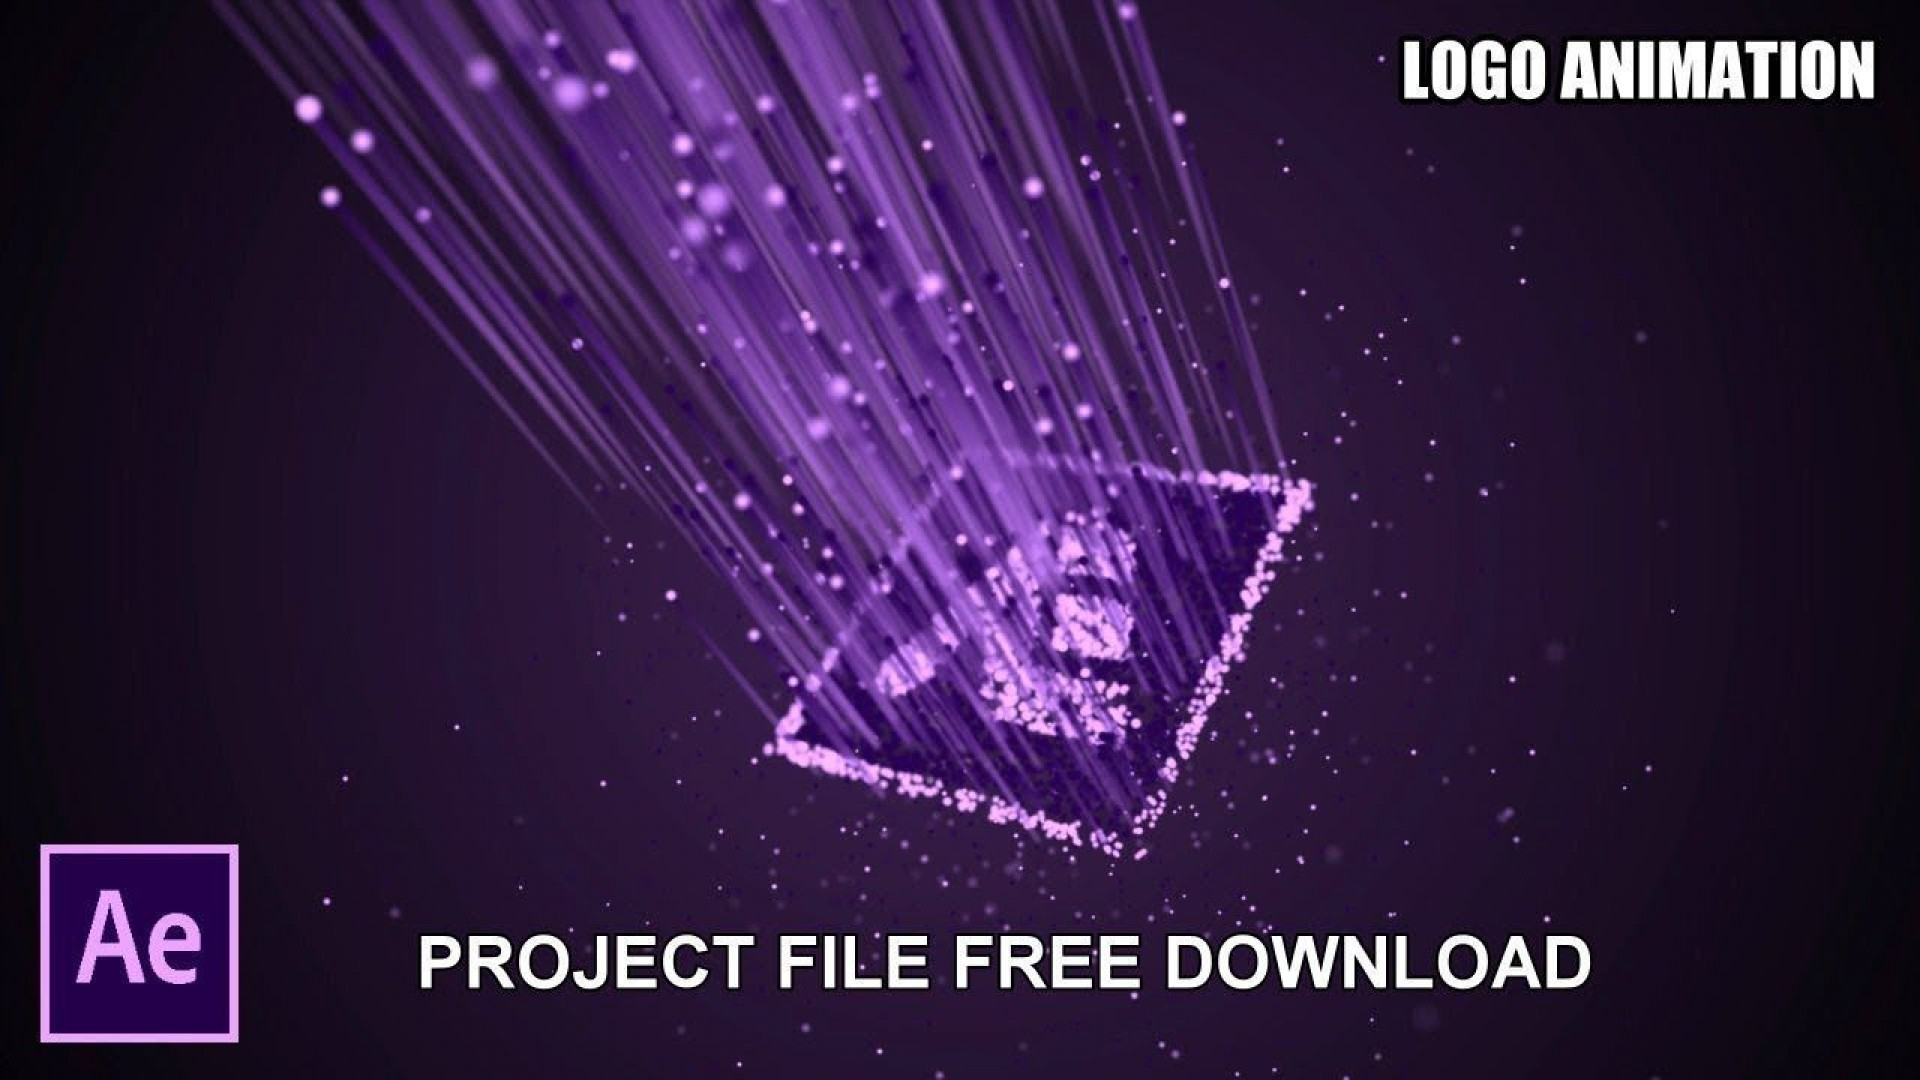 004 Wonderful Adobe After Effect Logo Template Free Download Concept  Cs6 Title Animation1920